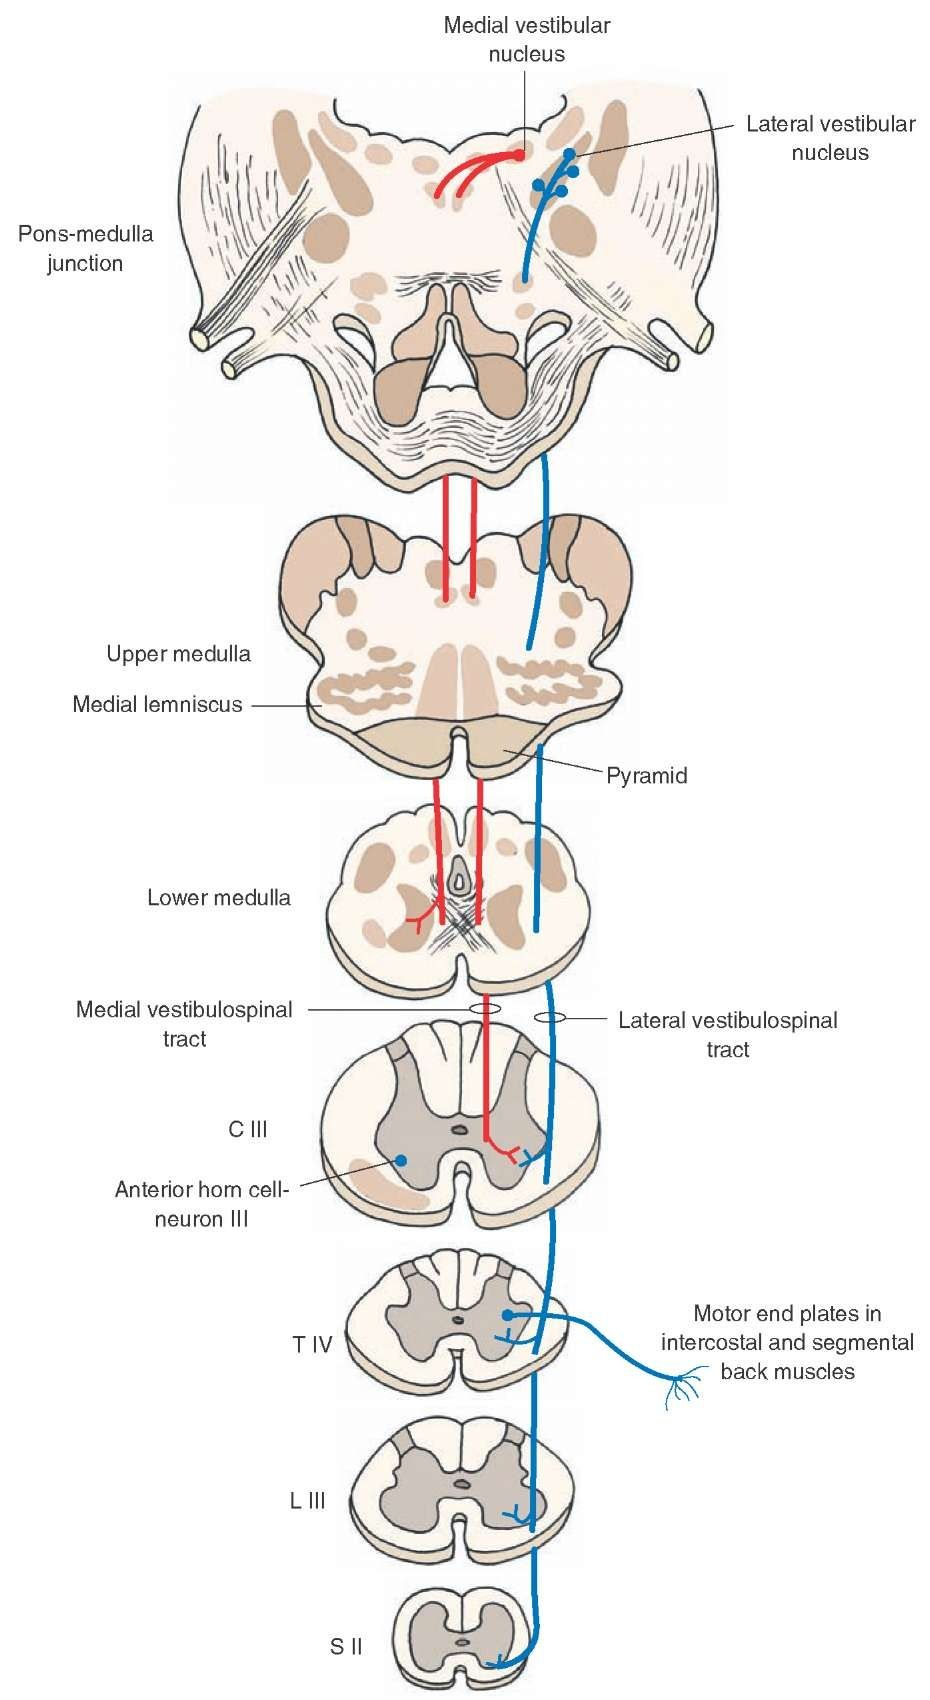 Vestibulospinal tracts | Neuroanatomy | Pinterest | Central nervous ...